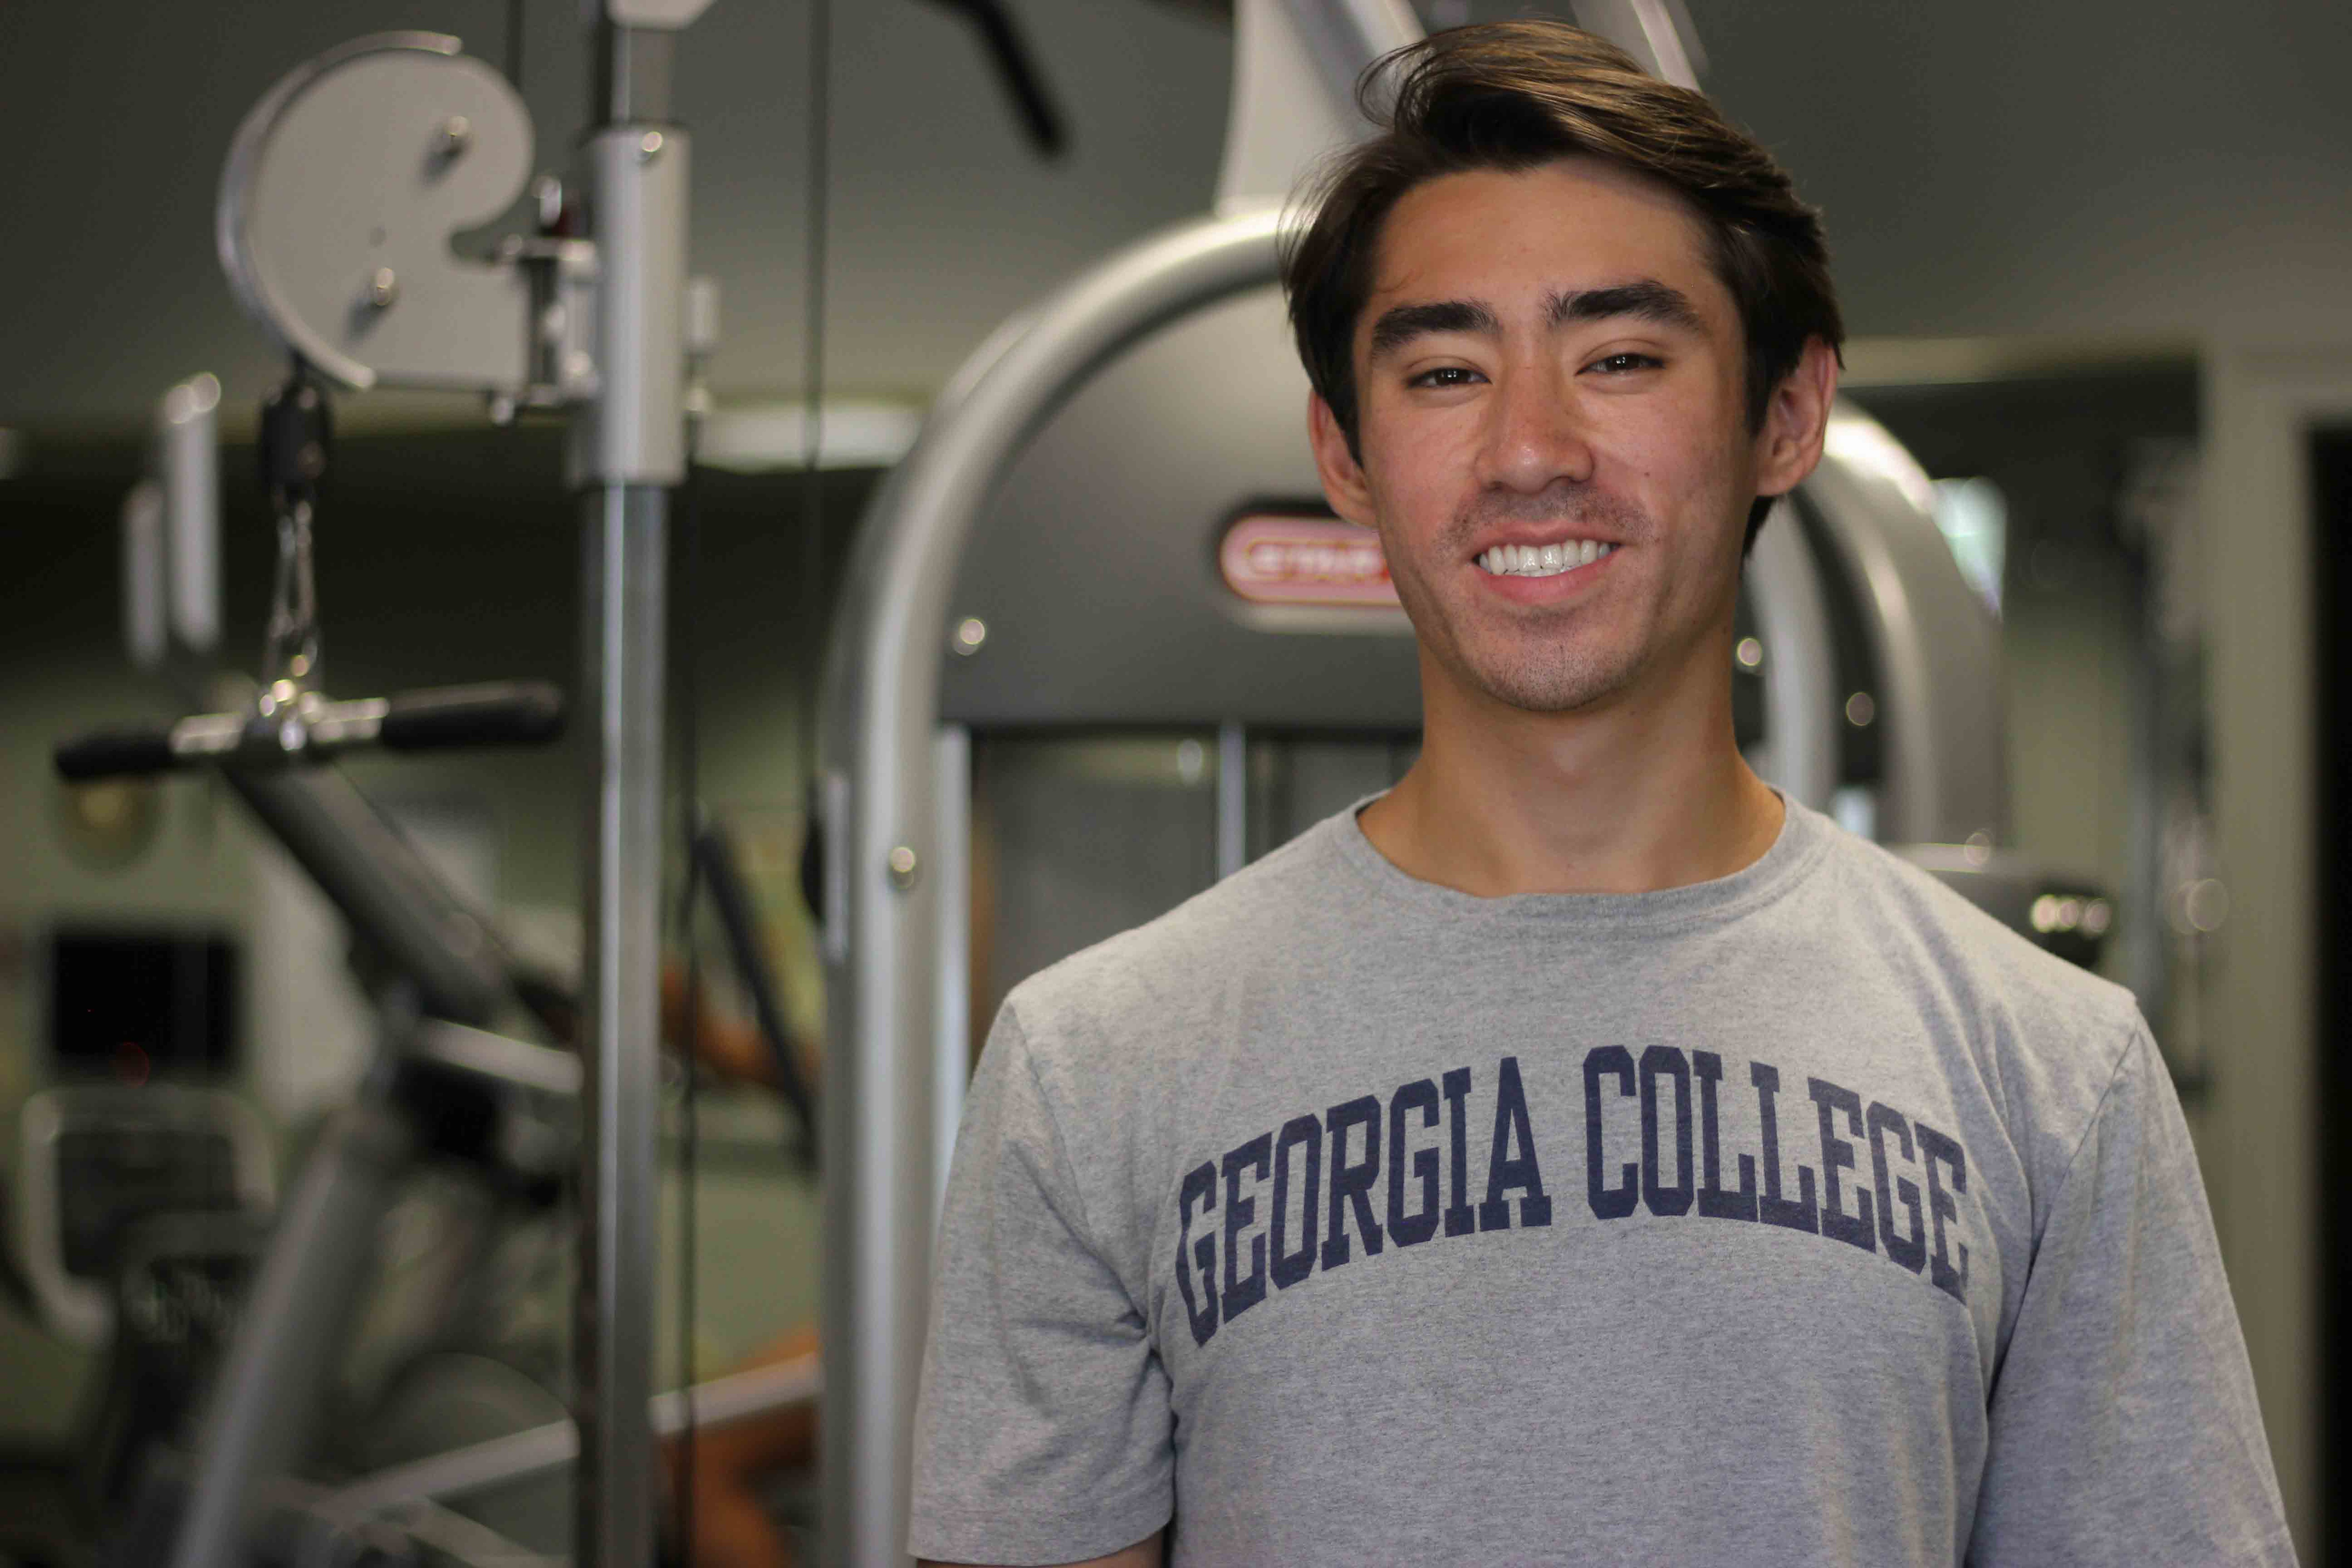 Joshua Selby, exercise science major